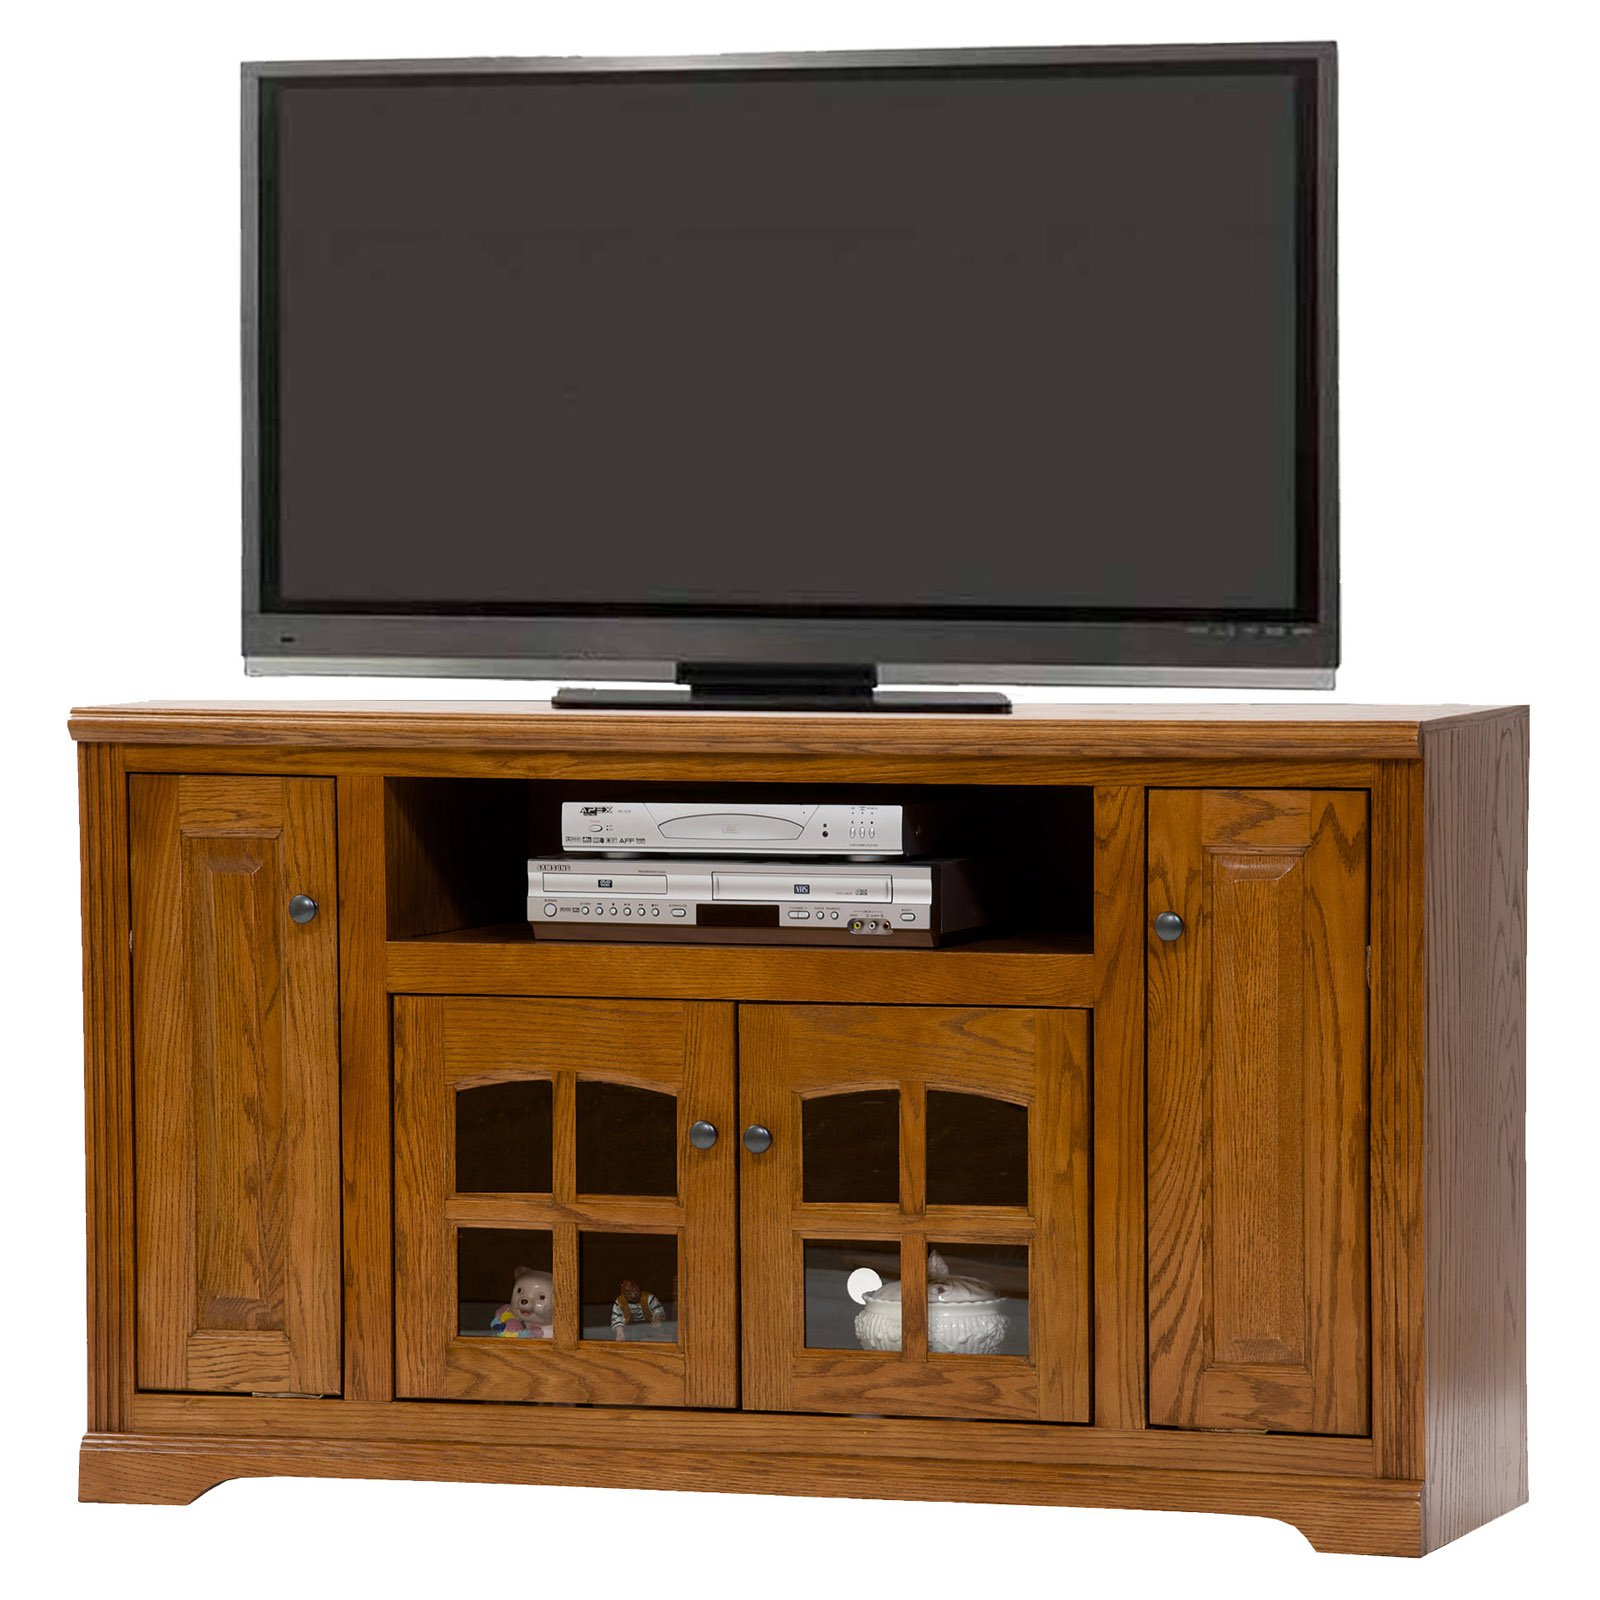 American Heartland Oak TV Stand - Assorted Finishes